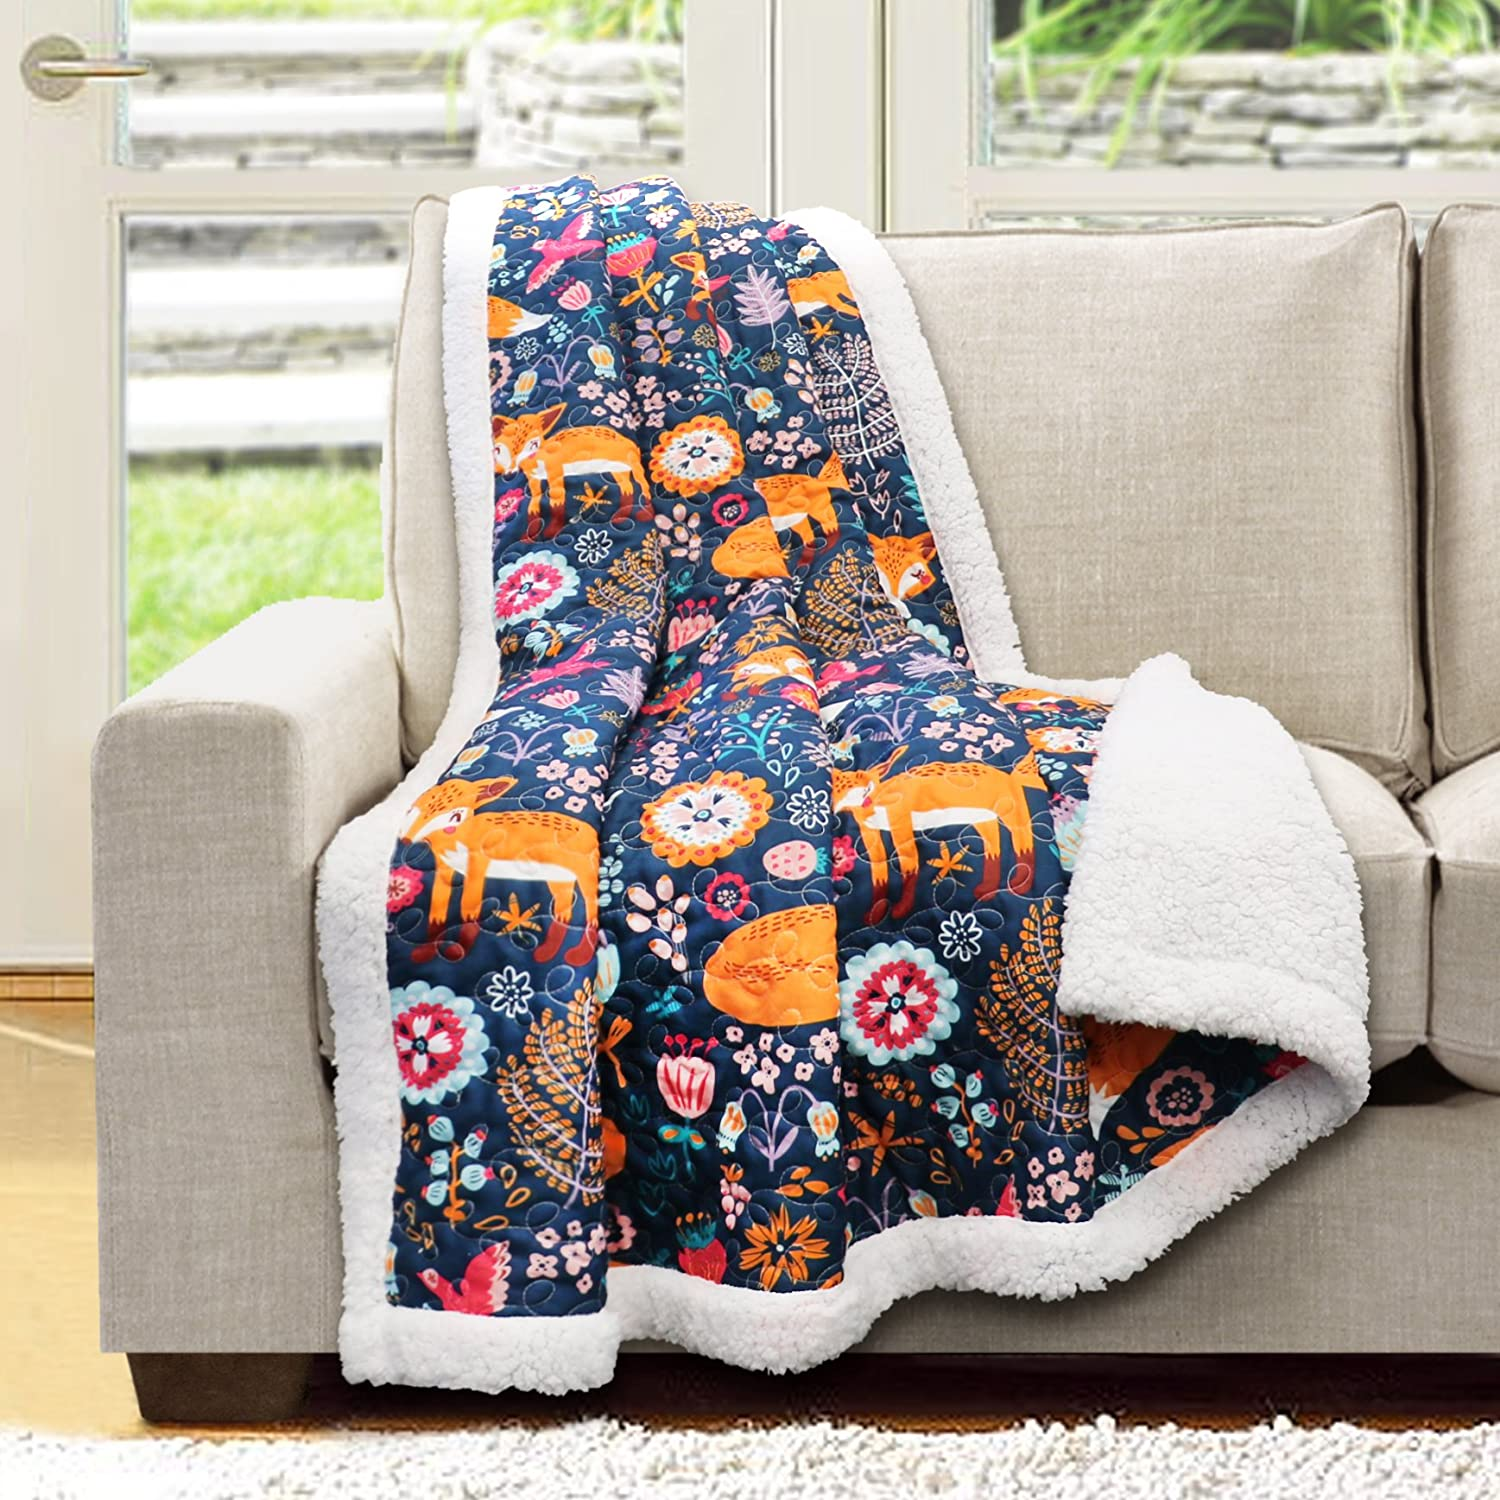 "Lush Decor 16T000553 Pixie Fox Sherpa Throw, 60"" x 50"", Navy"